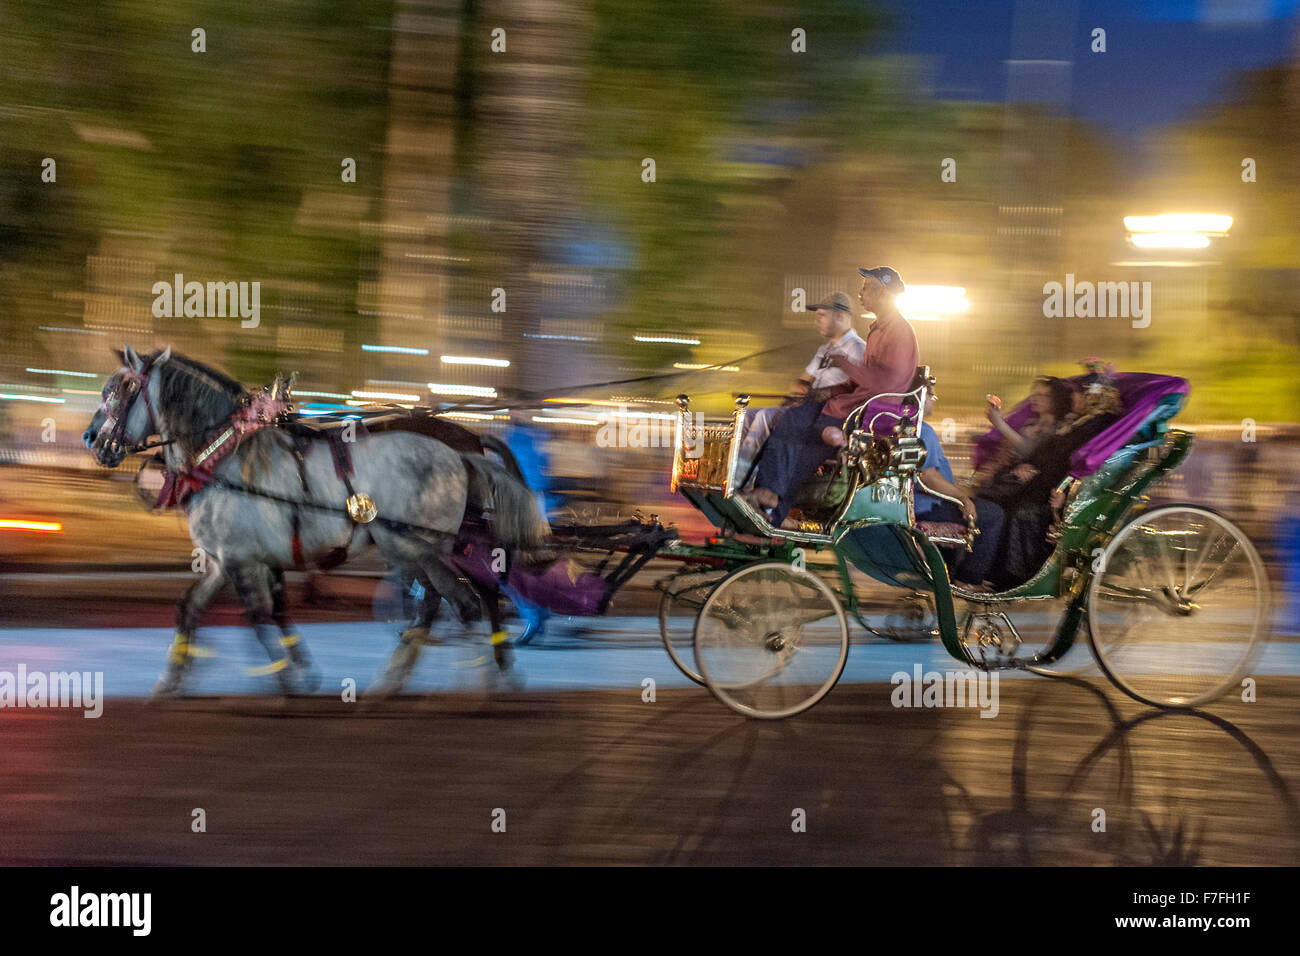 Horse drawn carriage in Jemaa El Fna Square in Marrakech, Morocco. - Stock Image